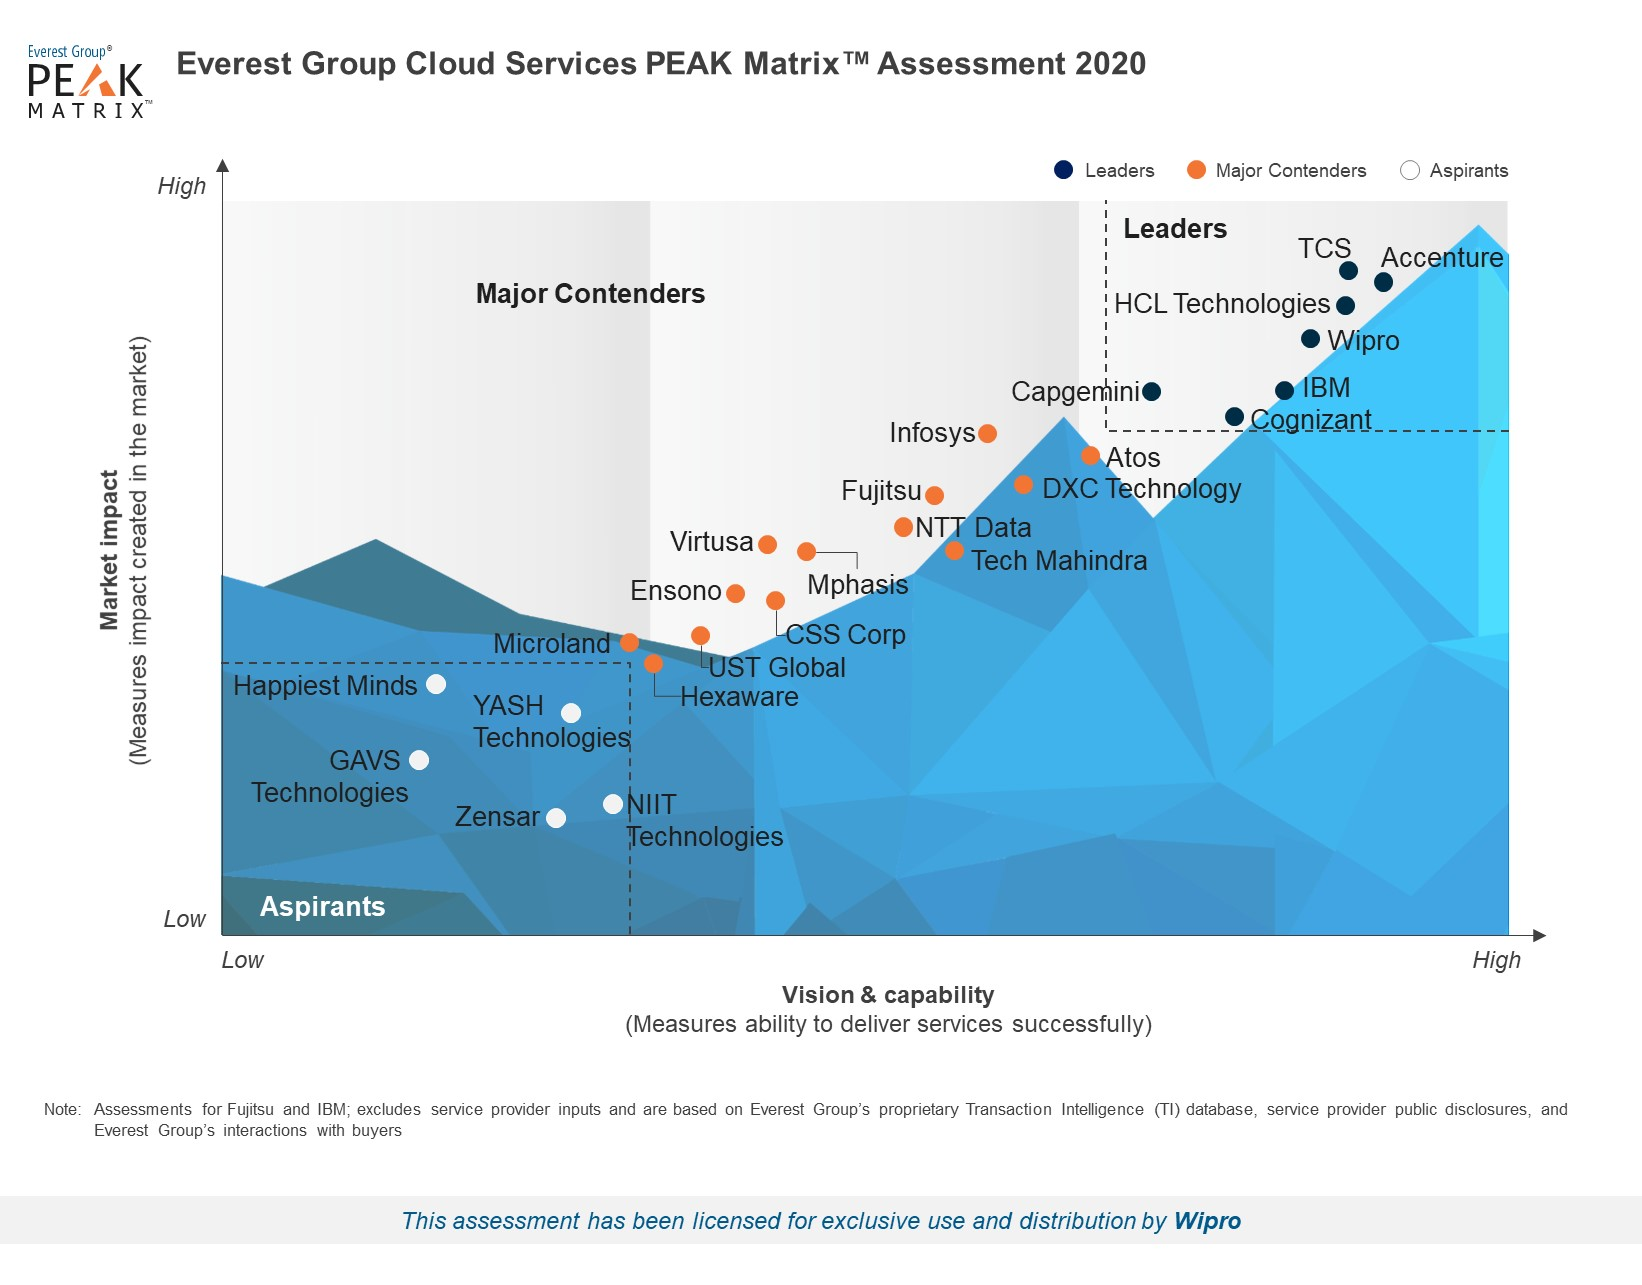 Wipro positioned as a Leader in Cloud Service Providers PEAK MatrixTM 2020